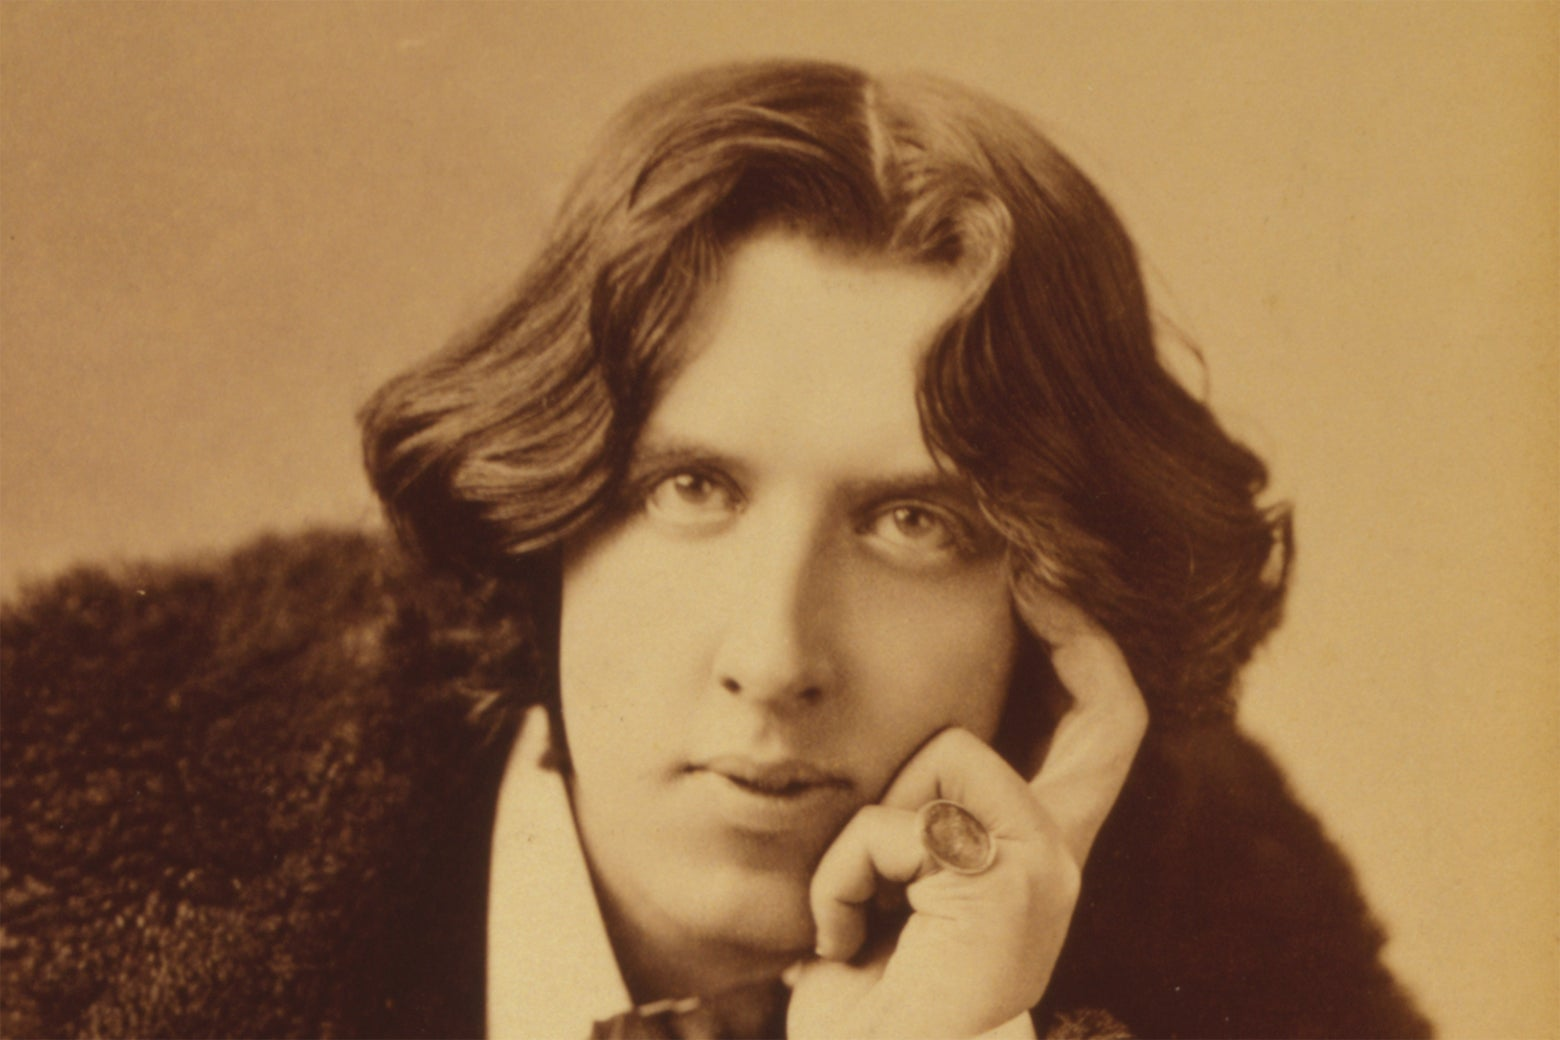 A portrait of Oscar Wilde.